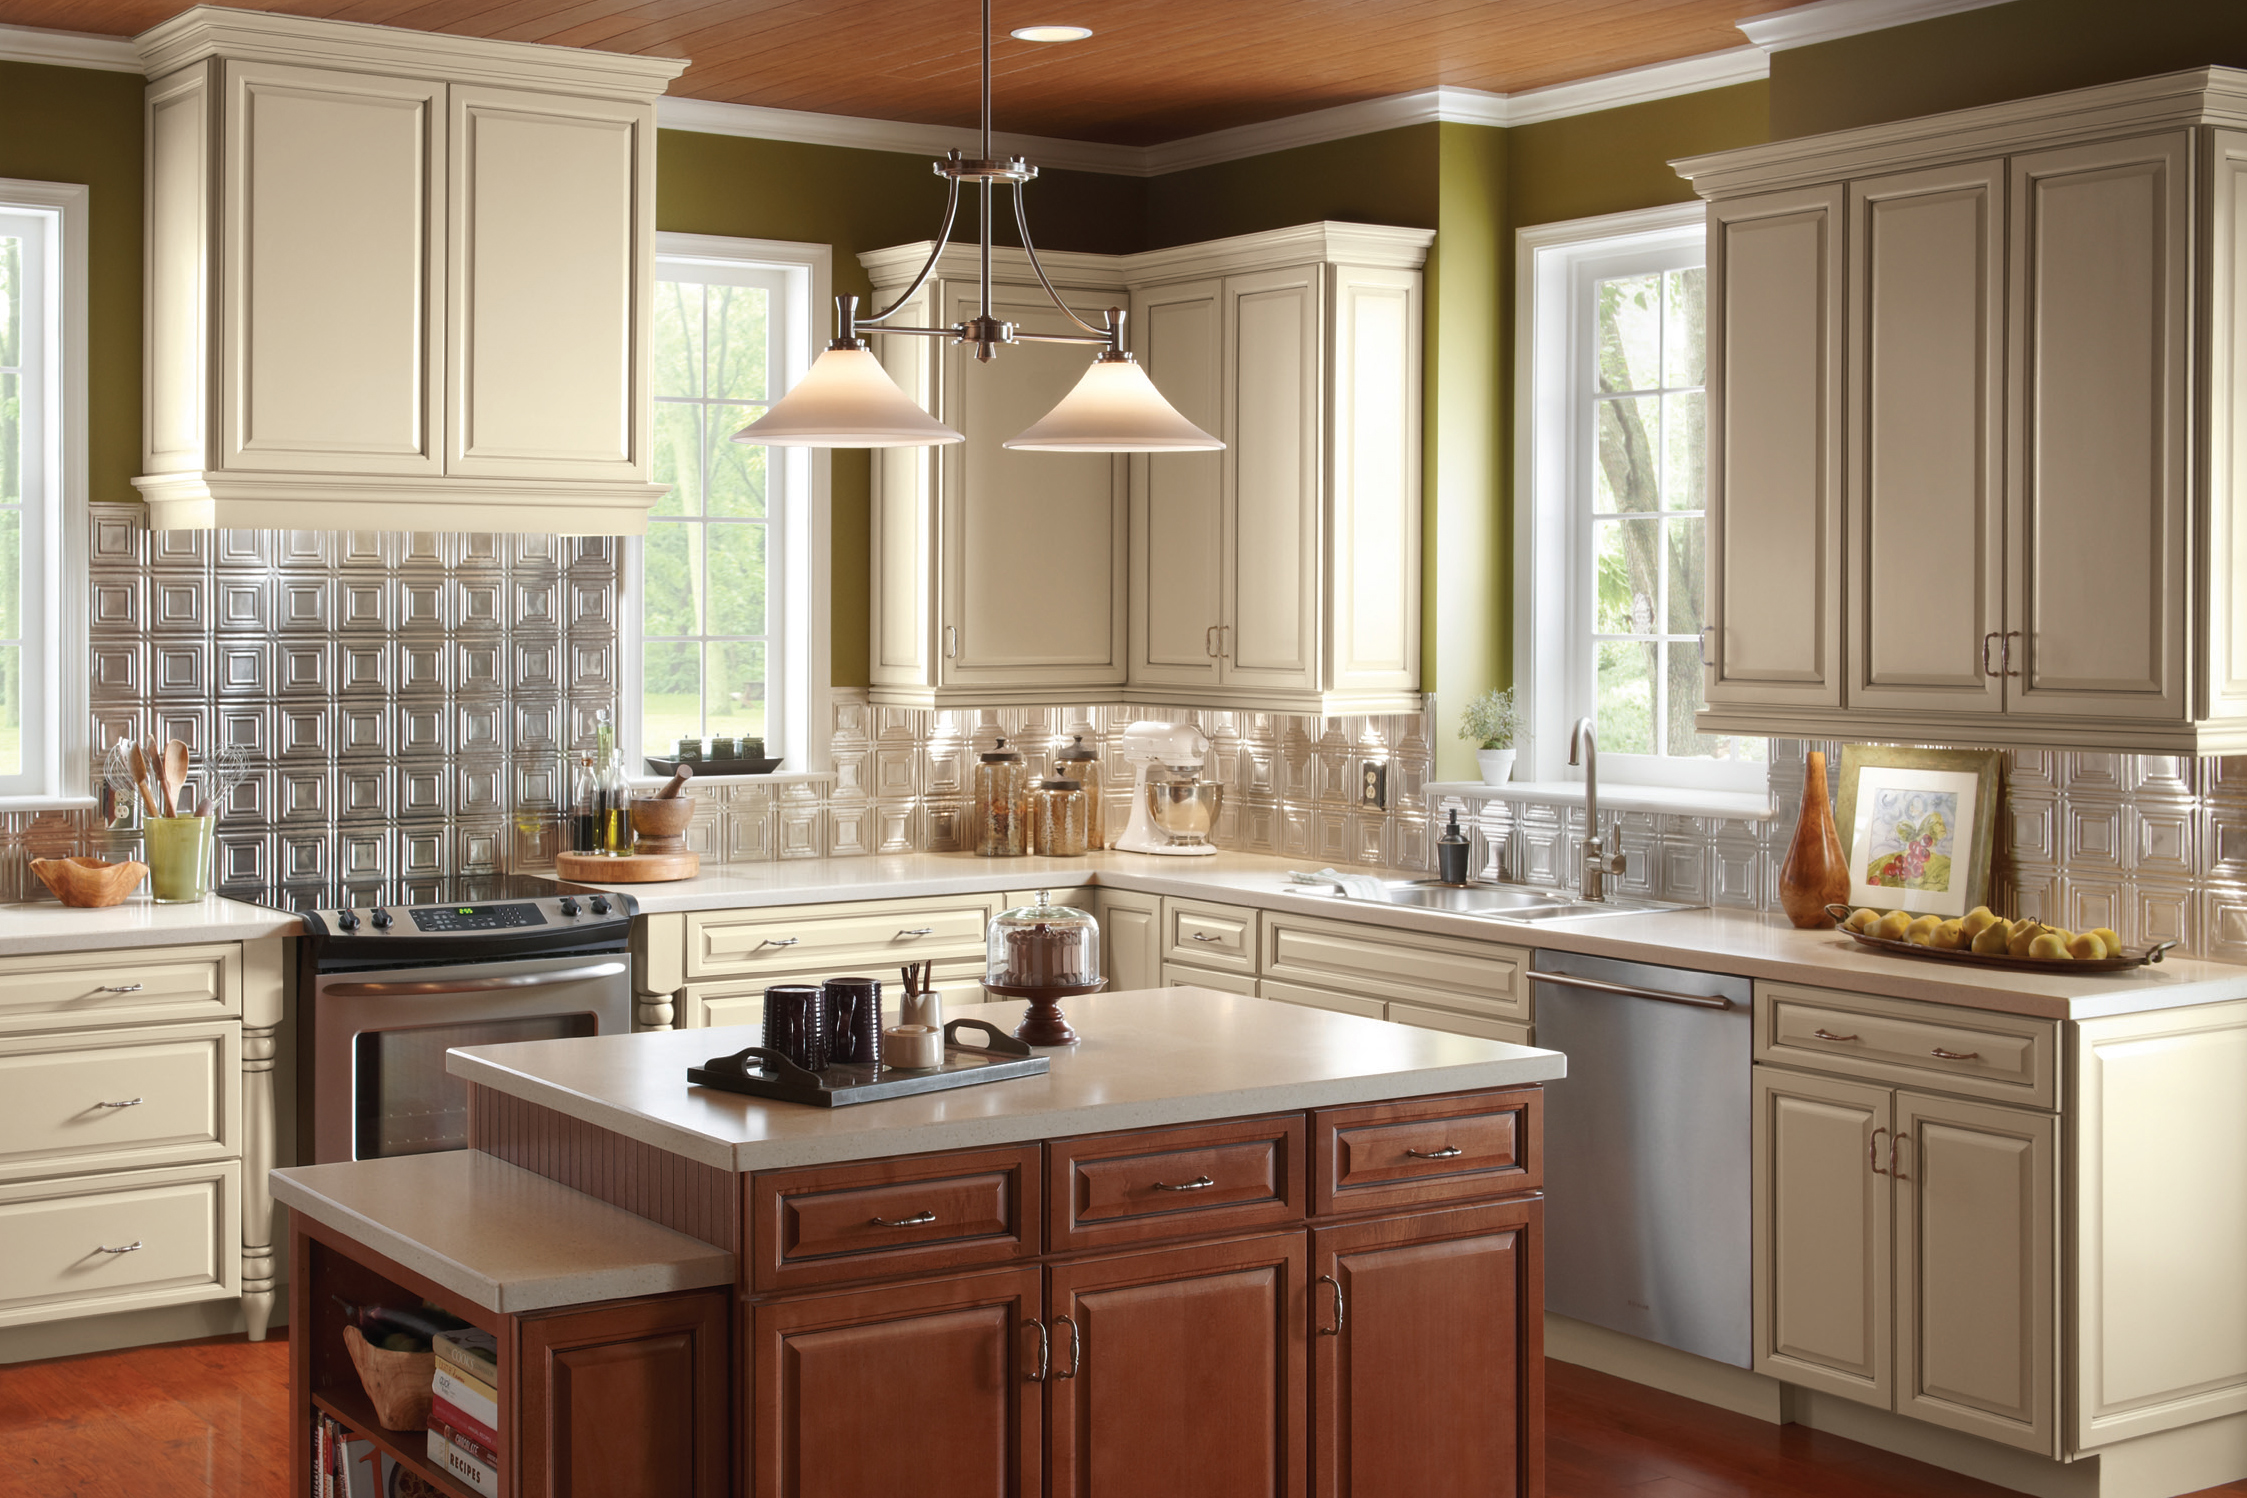 former armstrong cabinets relaunched in new echelon advanta brands o kitchen cabinets menards Former Armstrong Cabinets Relaunched in New Echelon Advanta Brands Remodeling Cabinets Kitchen Remodeling Armstrong Cabinets ACPI Advanta Cabinets